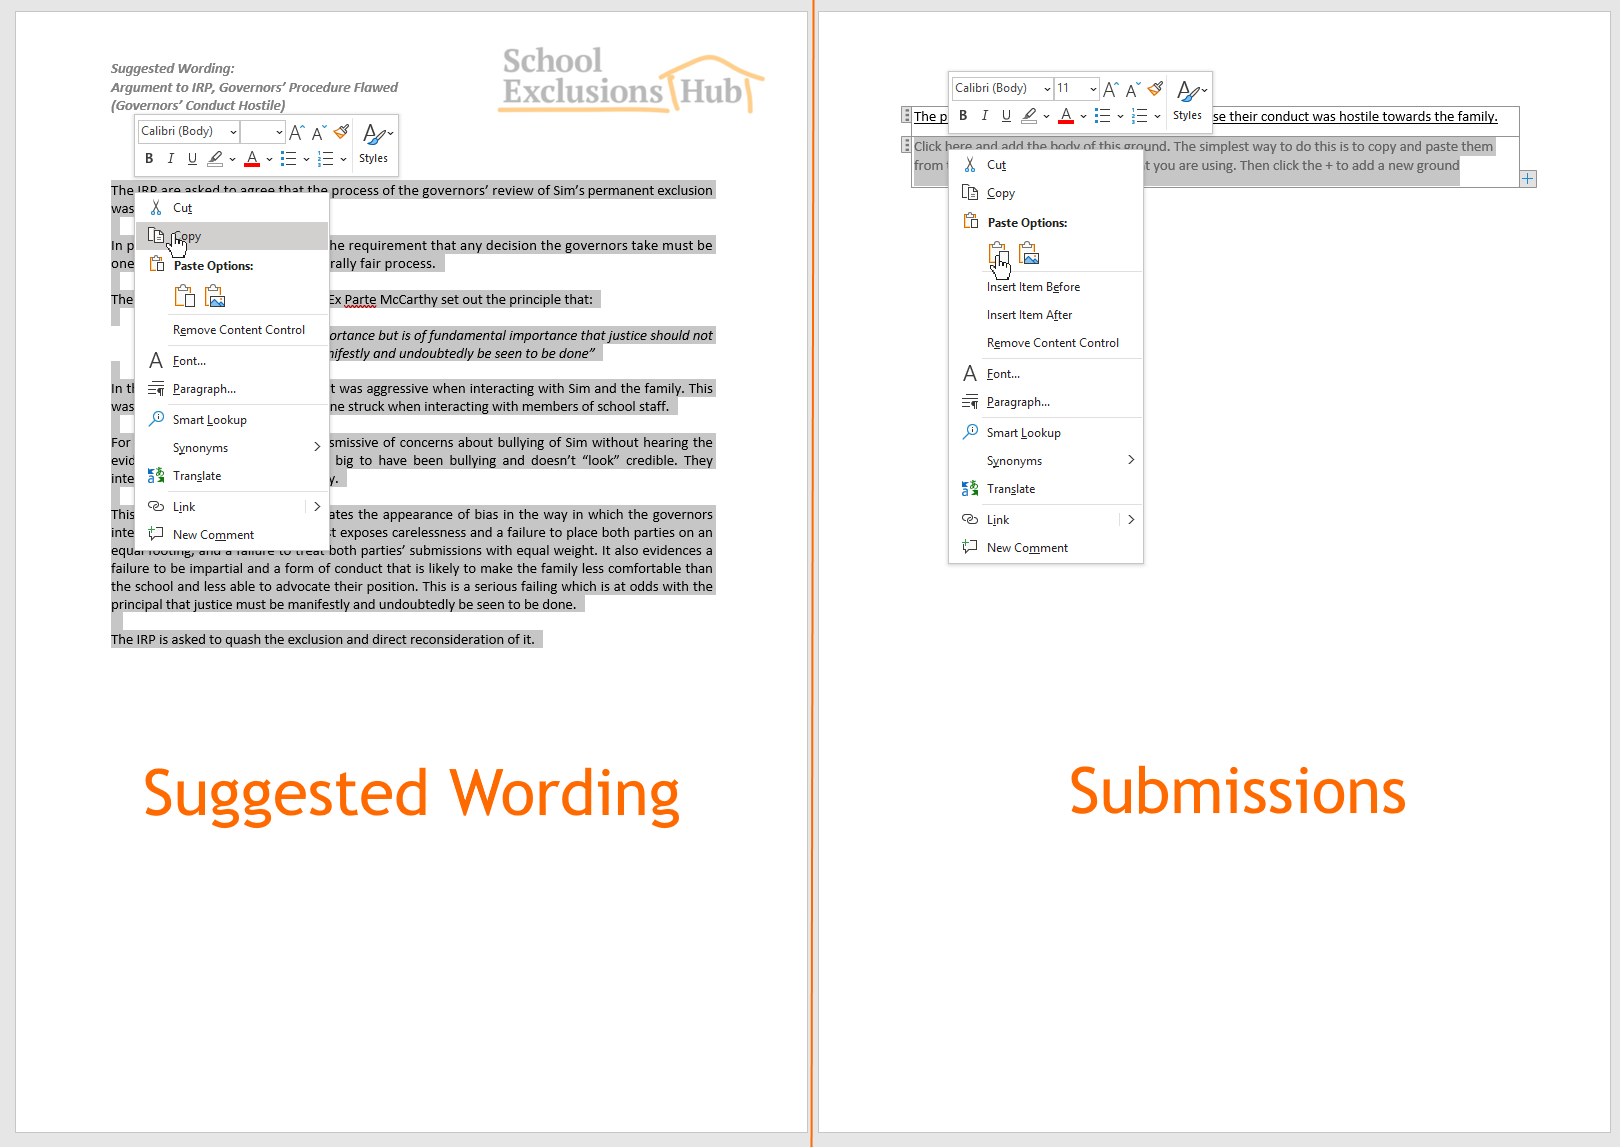 Copy and paste the arguments into the Template Document: Submissions